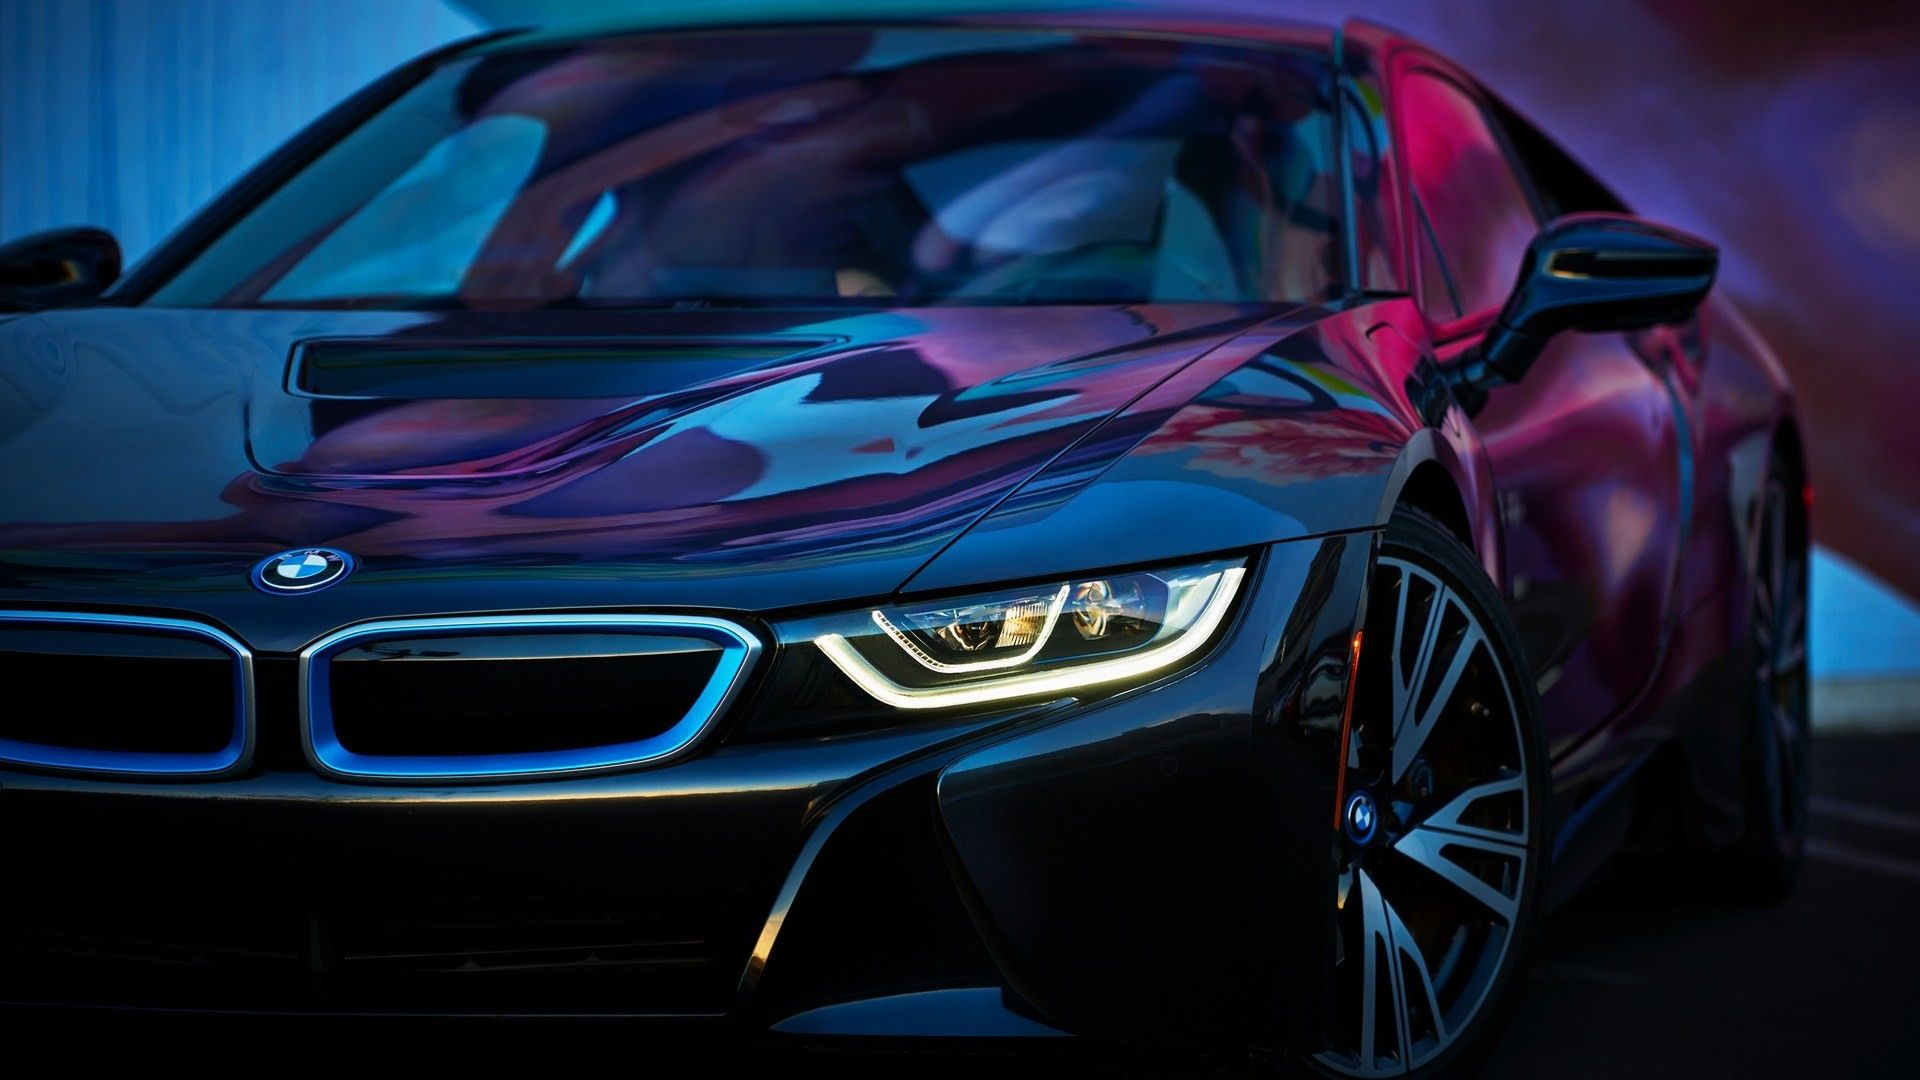 Inspirational Bmw I8 Wallpaper Phone In 2020 Bmw I8 Bmw Wallpapers Car Wallpapers